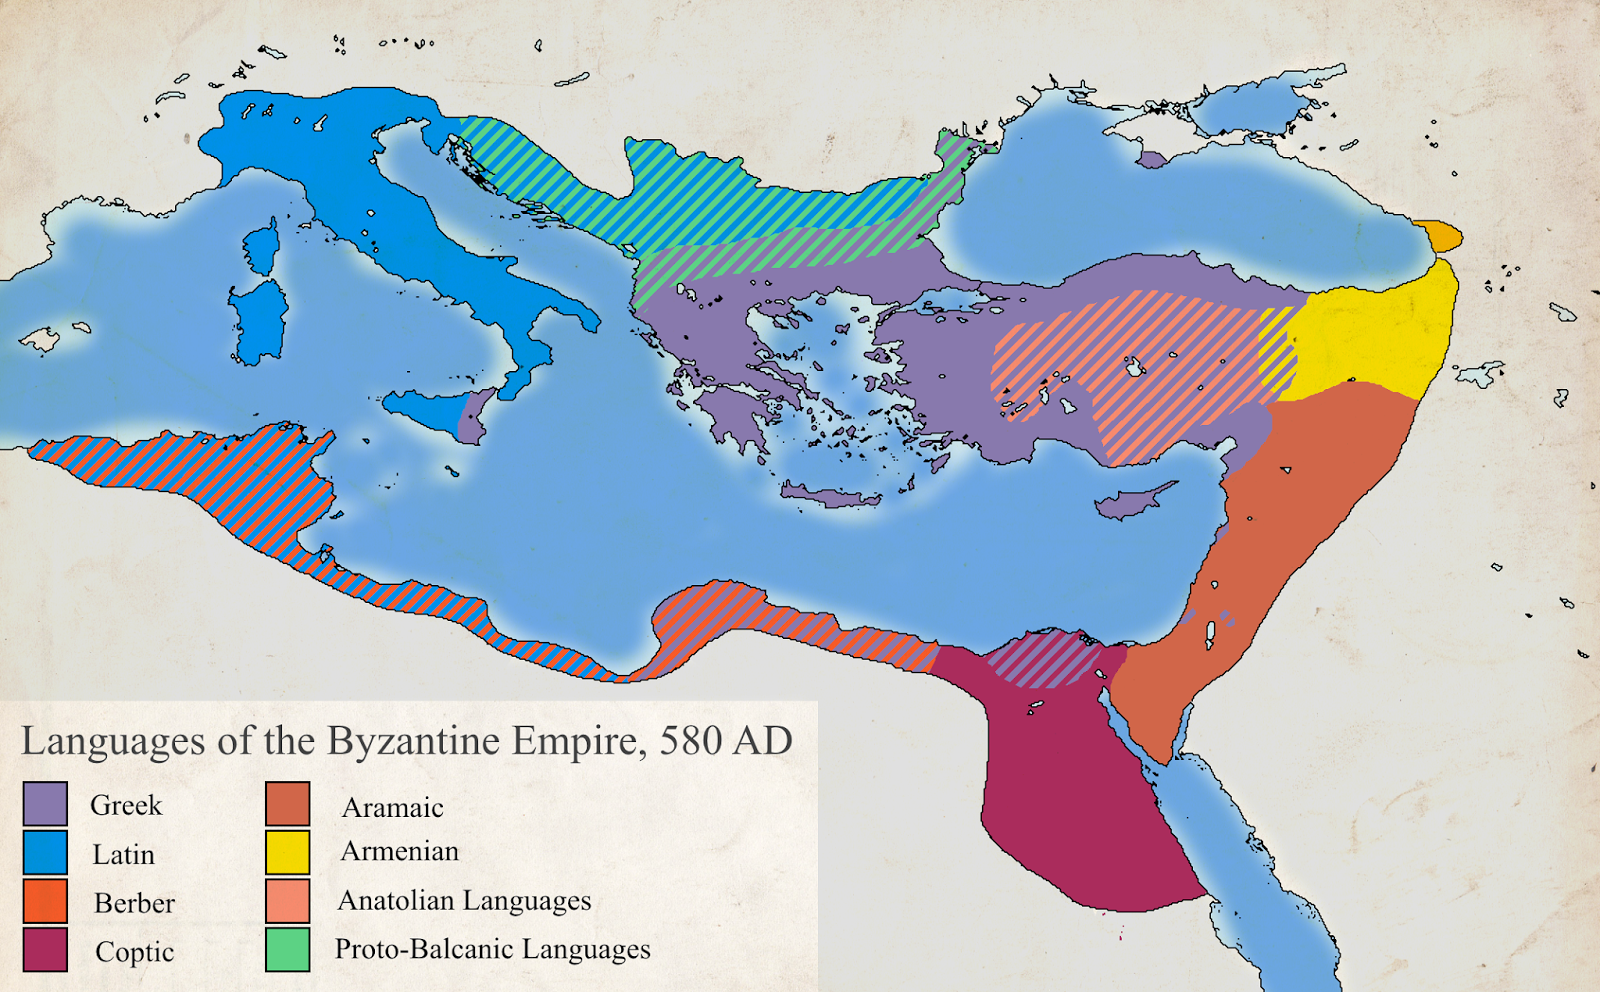 Languages of the Byzantine Empire (580 AD)